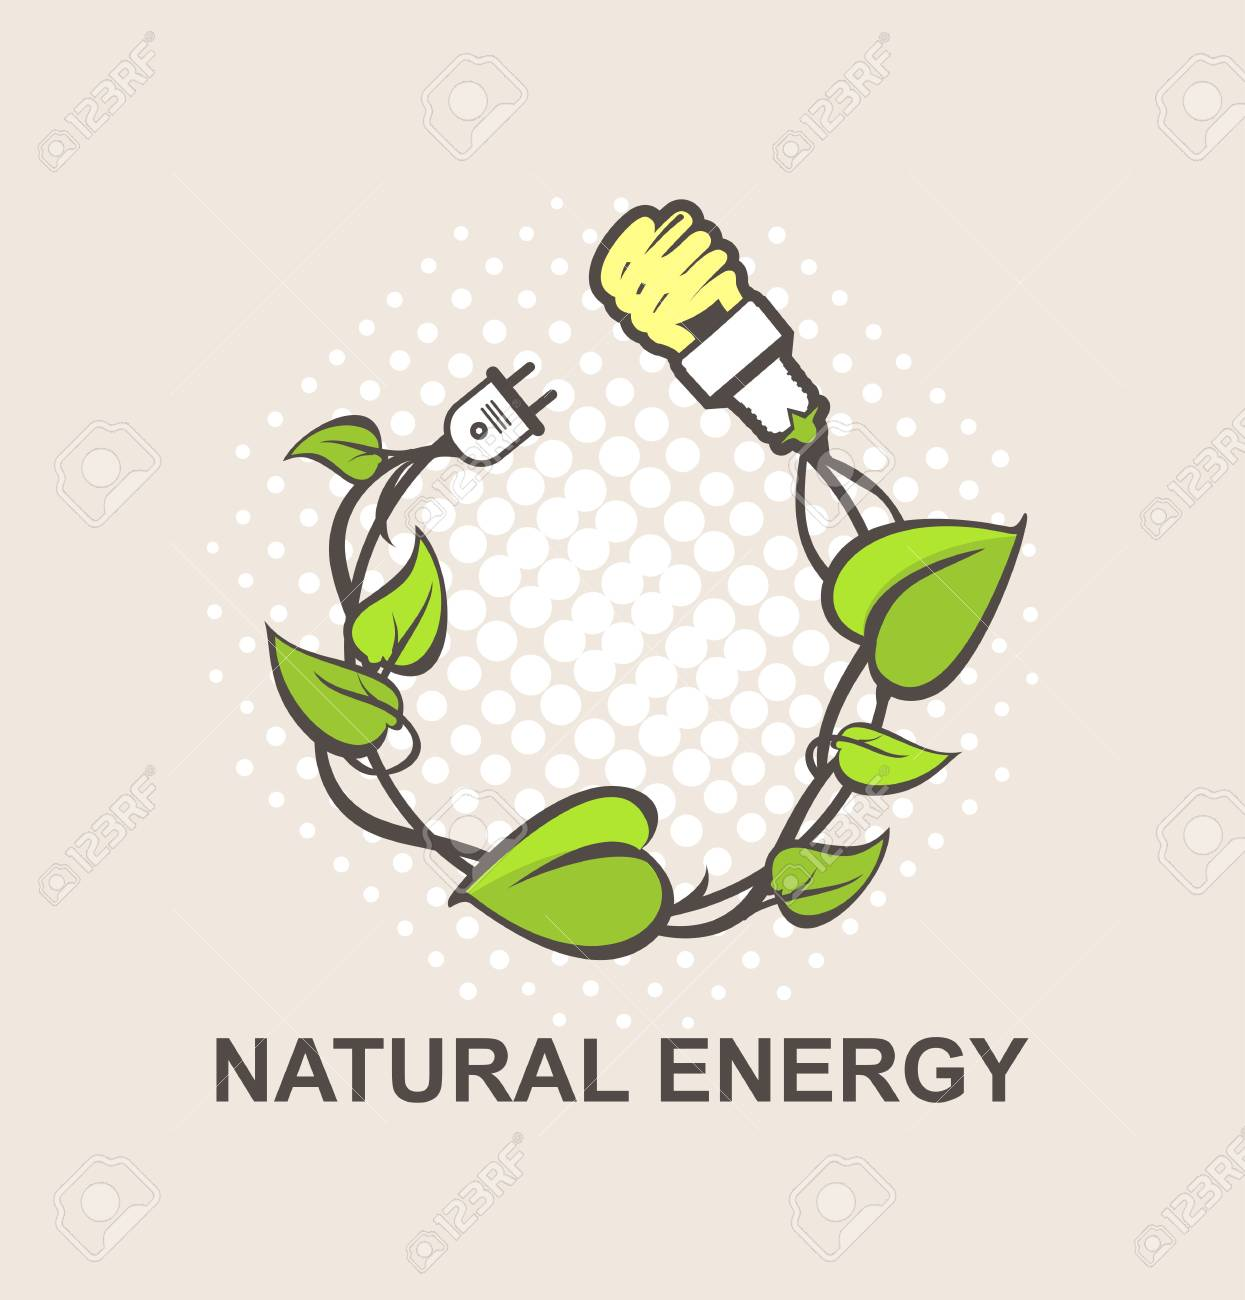 Green Energy Symbol Vector Wreath Woven In The Plant Connection ...